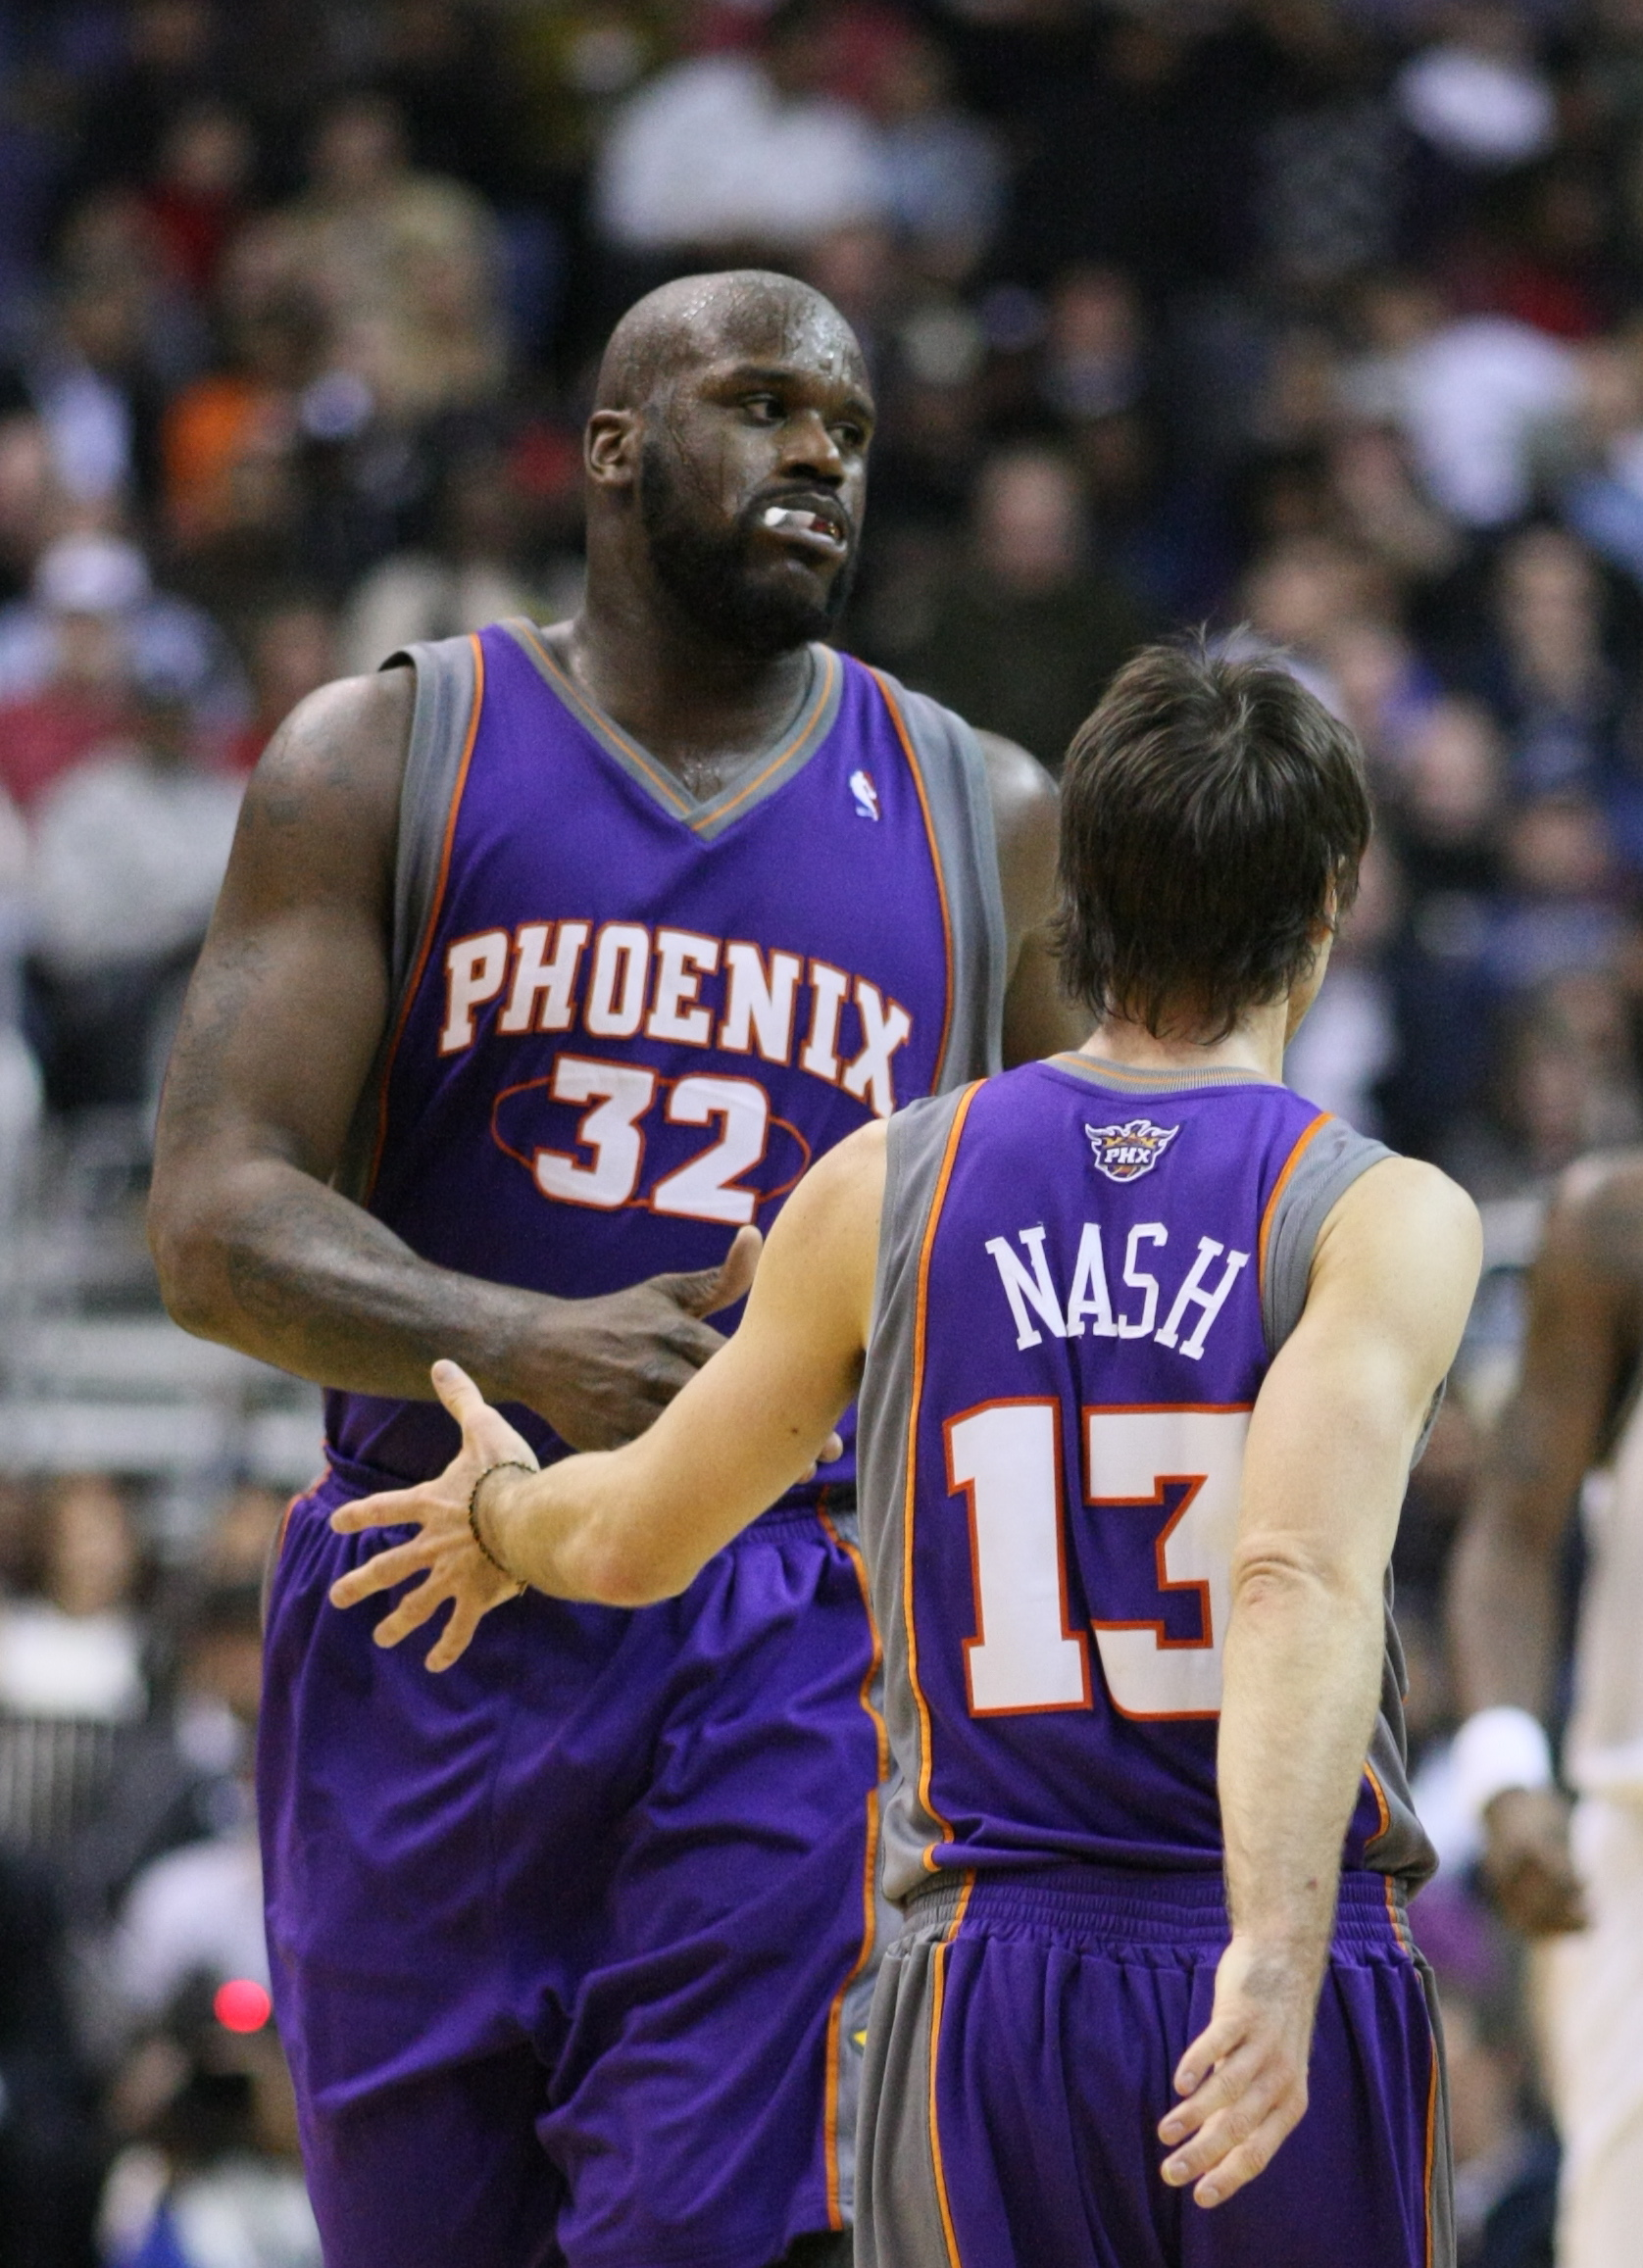 O'Neal with Phoenix teammate Steve Nash.